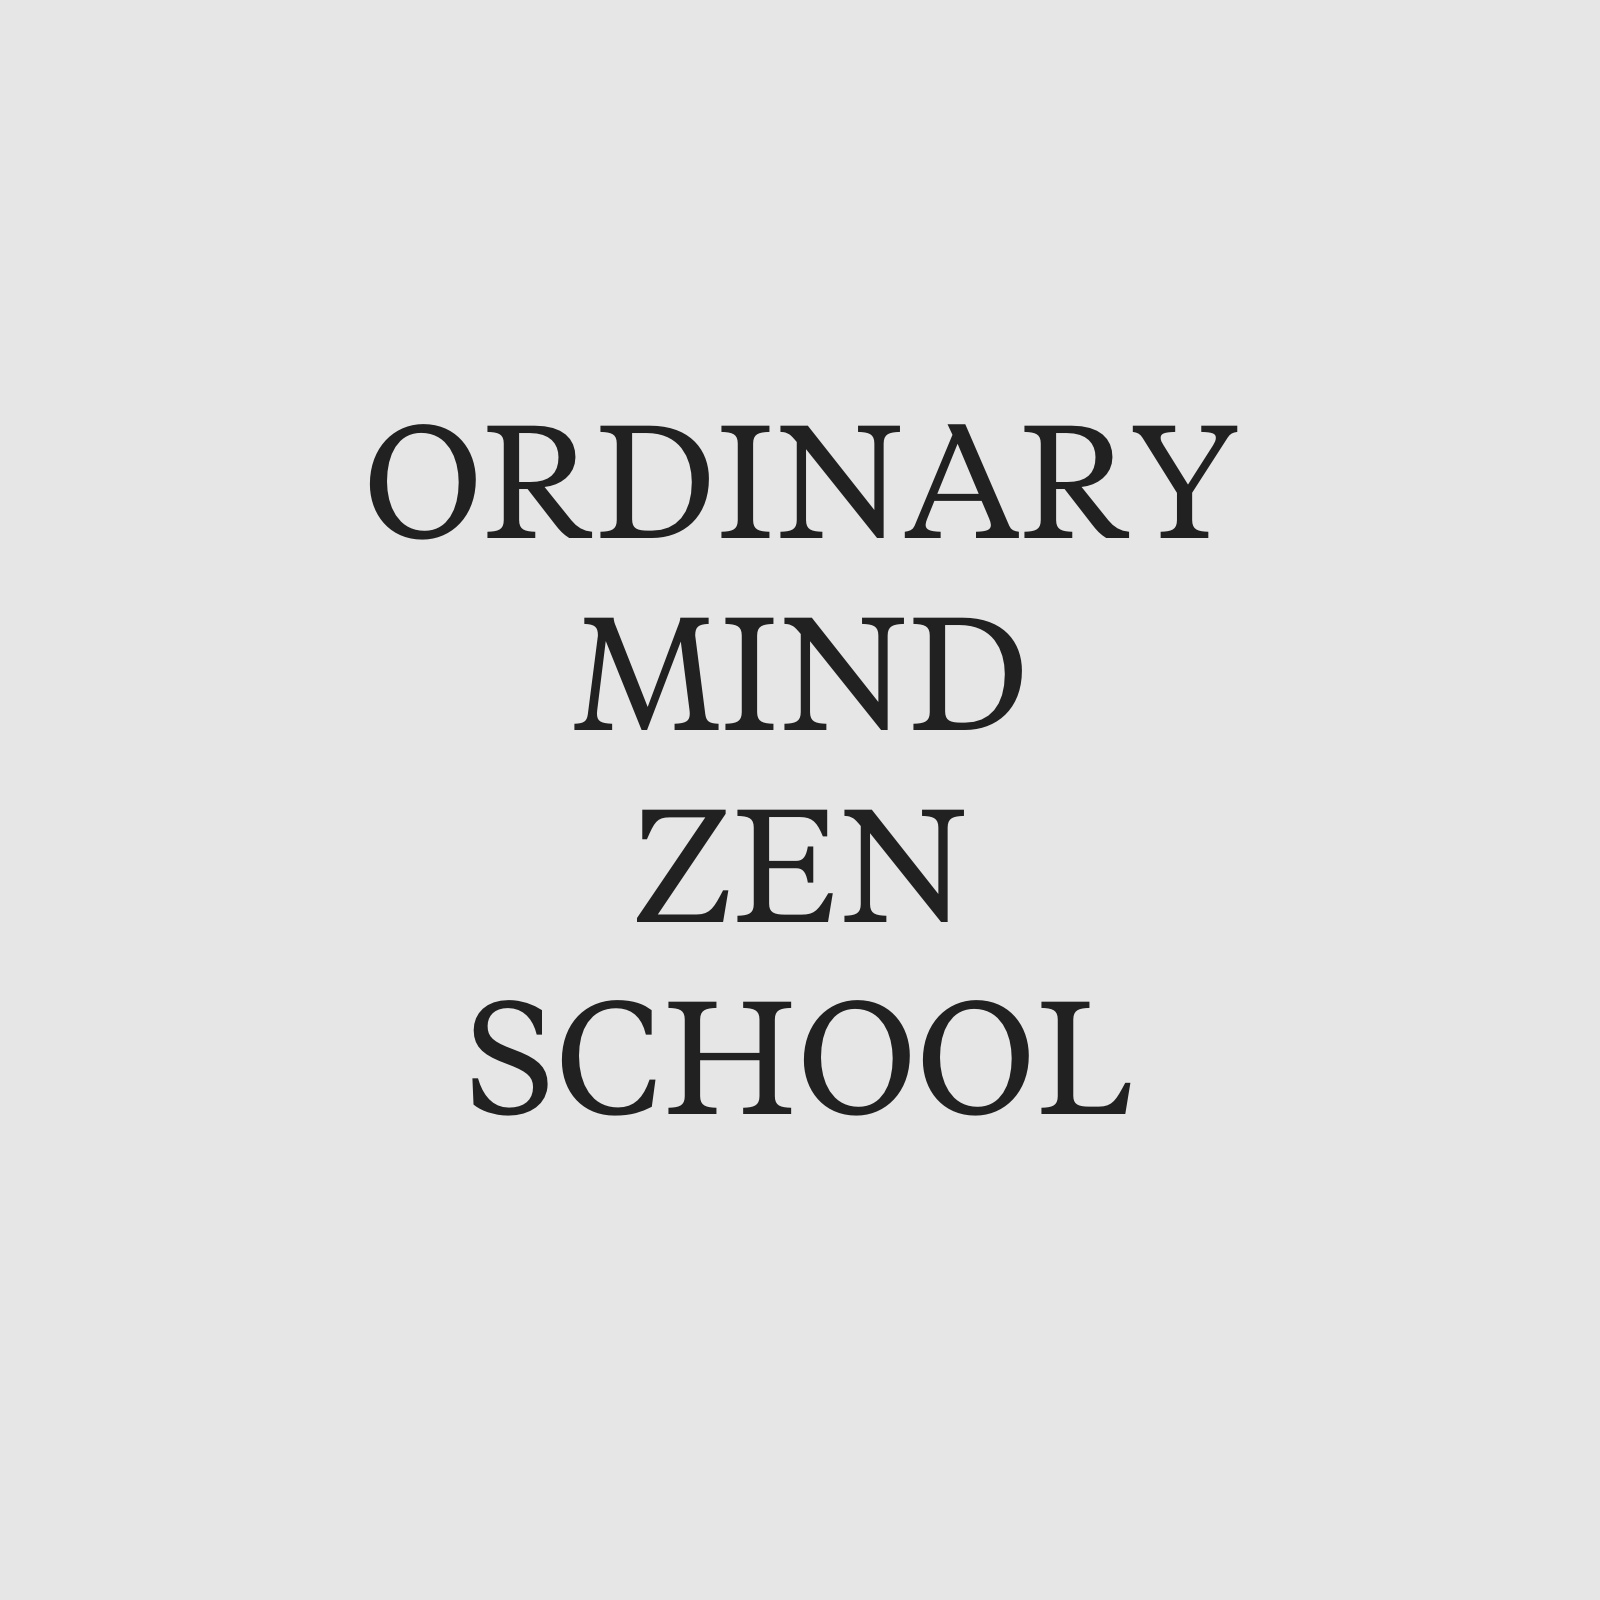 Ordinary Mind Zen School